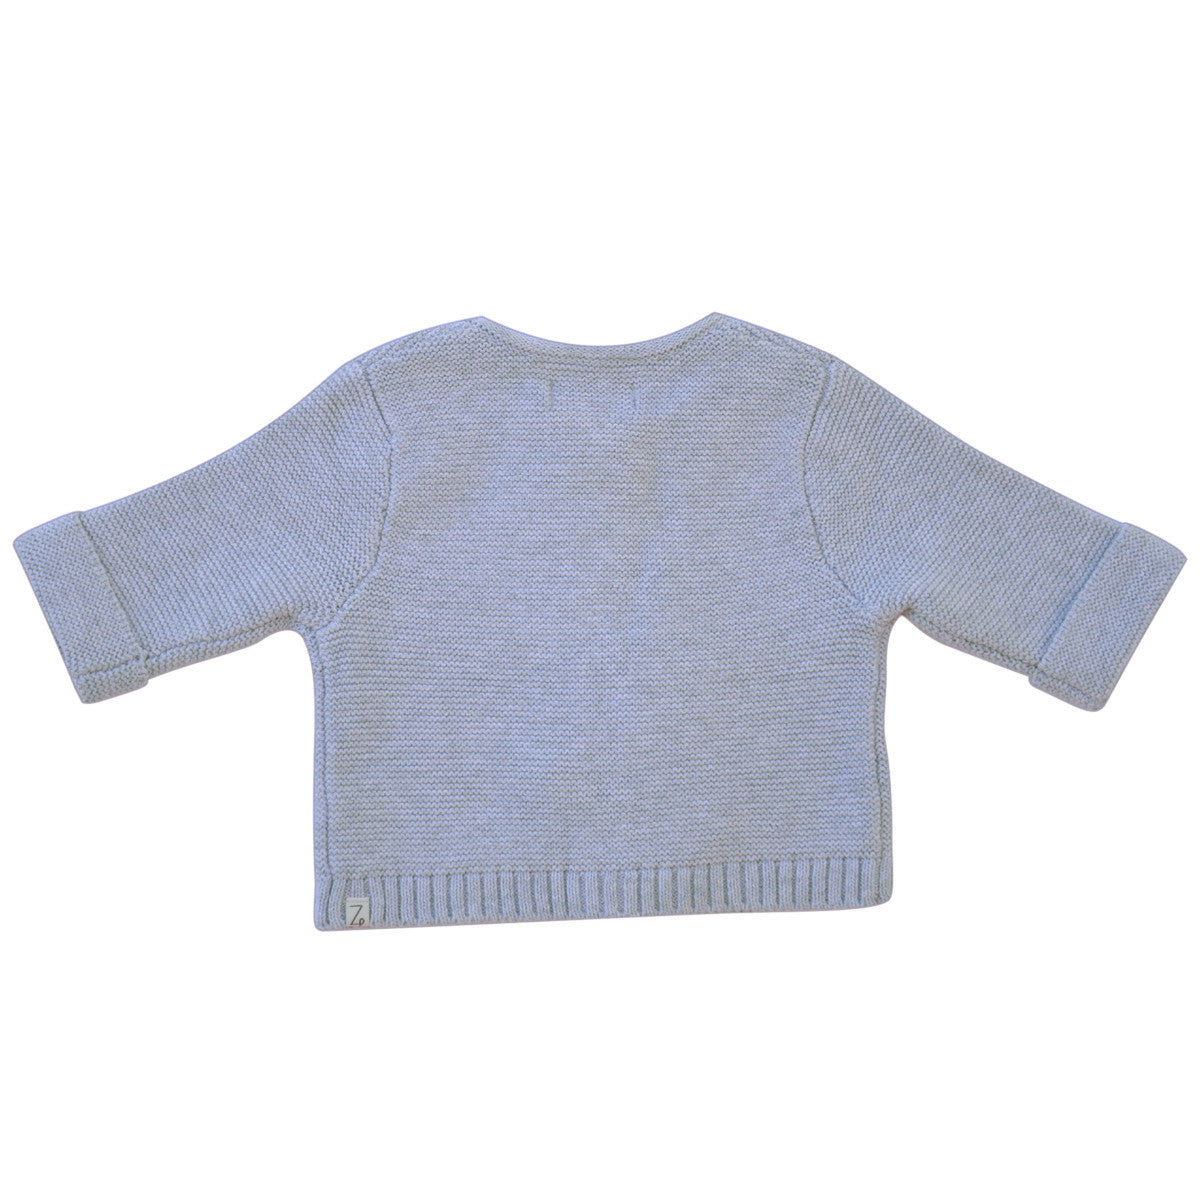 grey marle baby cardigan back